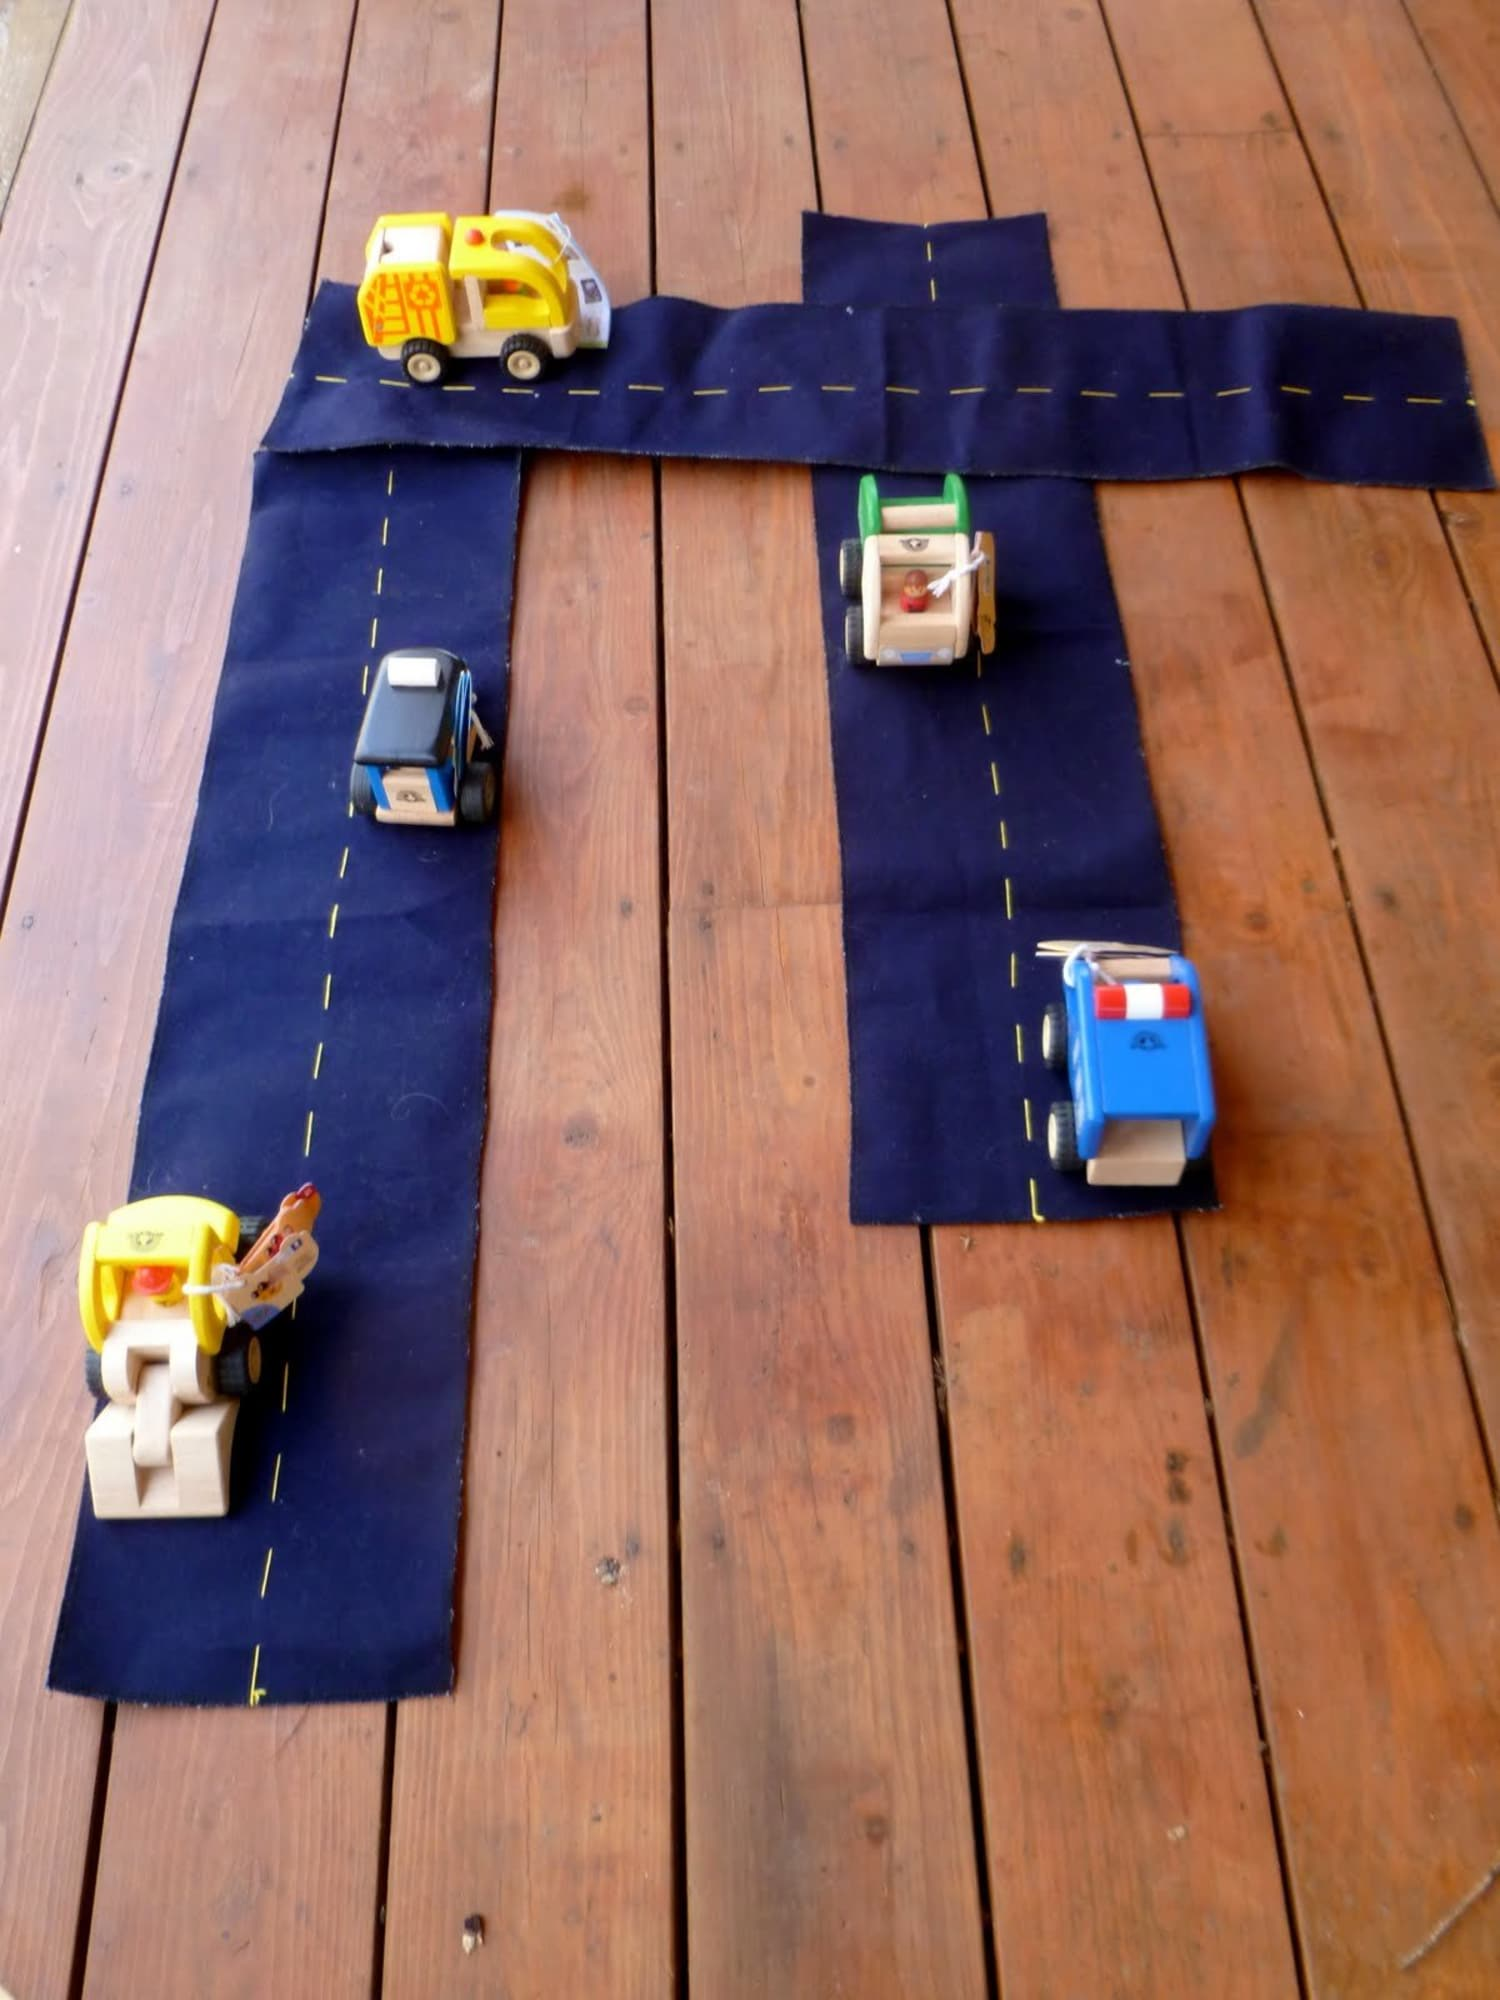 20+ Toys & Crafts You Can Make from Recyclables